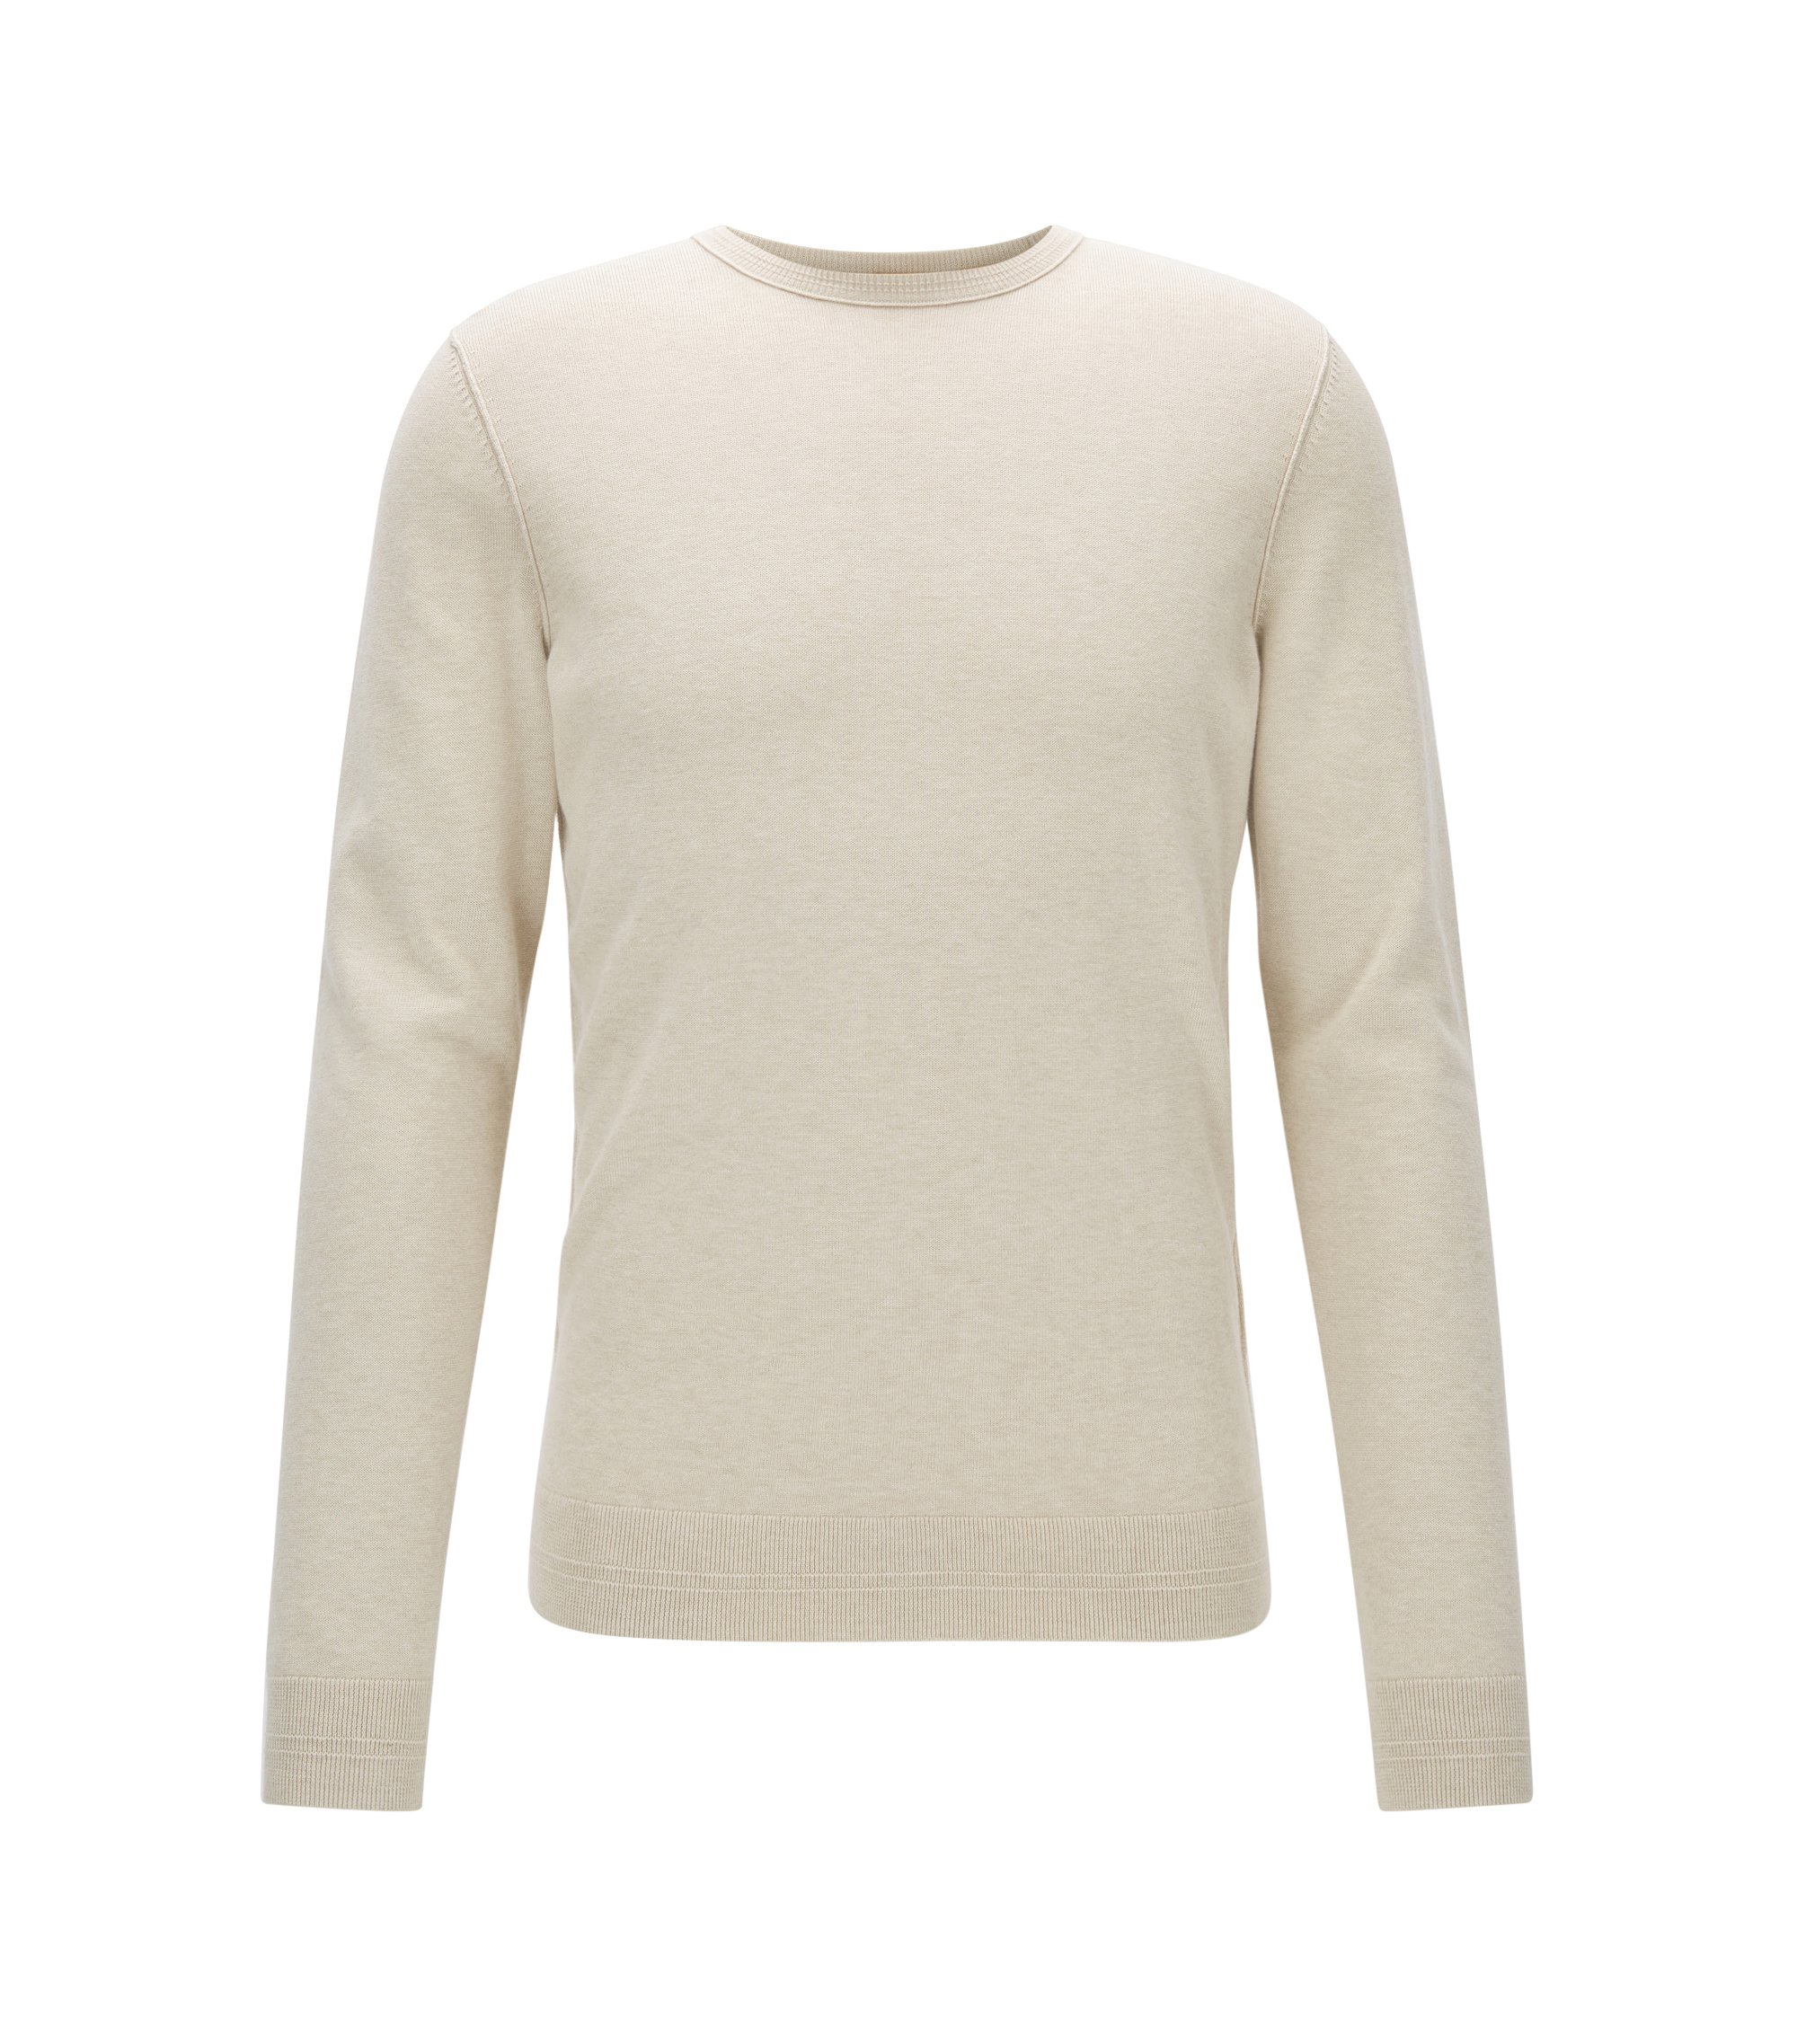 Crew-neck cotton-blend sweater with 3D ribbed accents, Natural